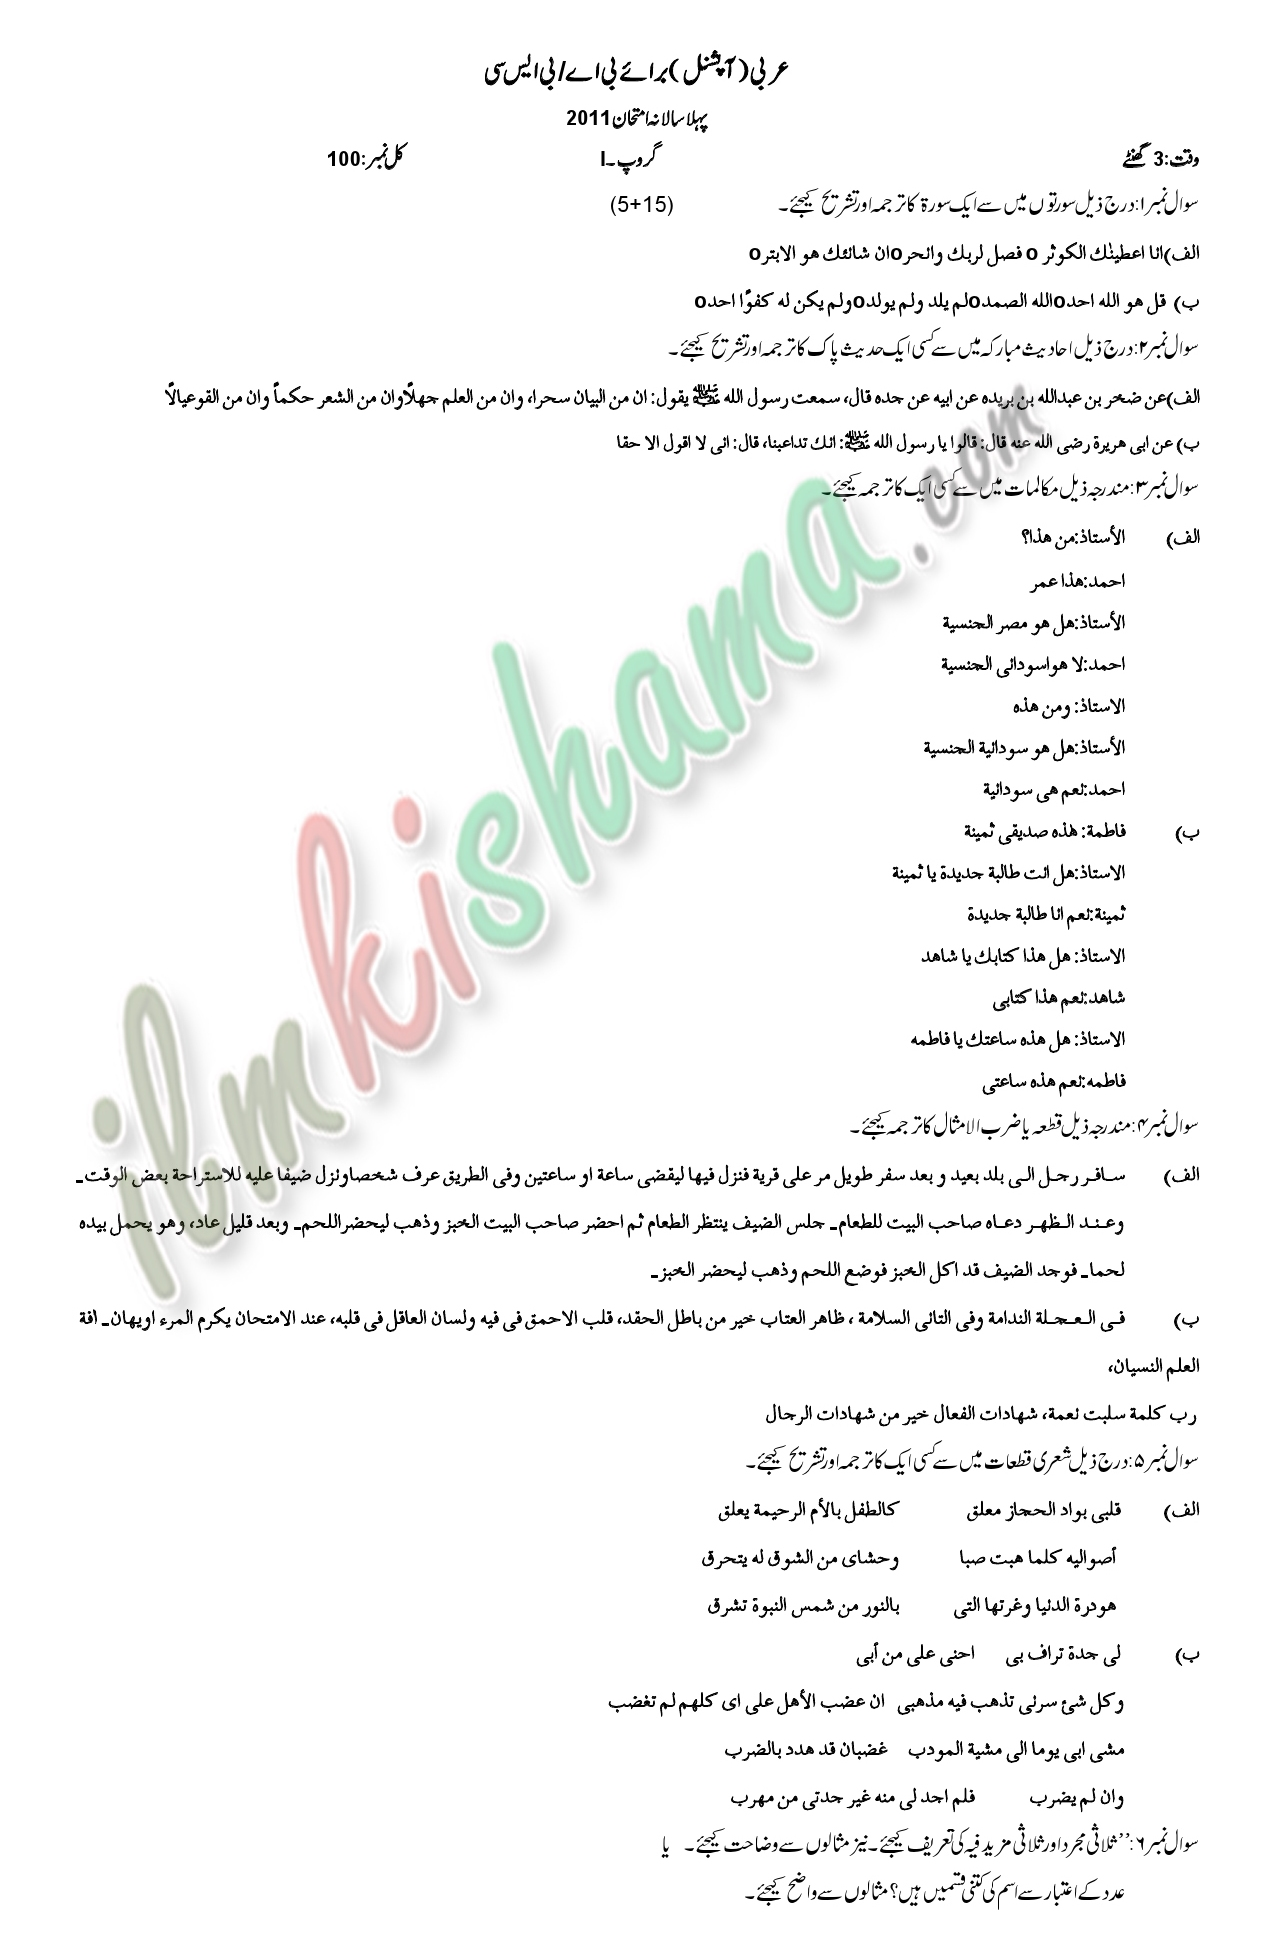 Arabic (Optional) Past Paper Sargodha University, B.A, 1st